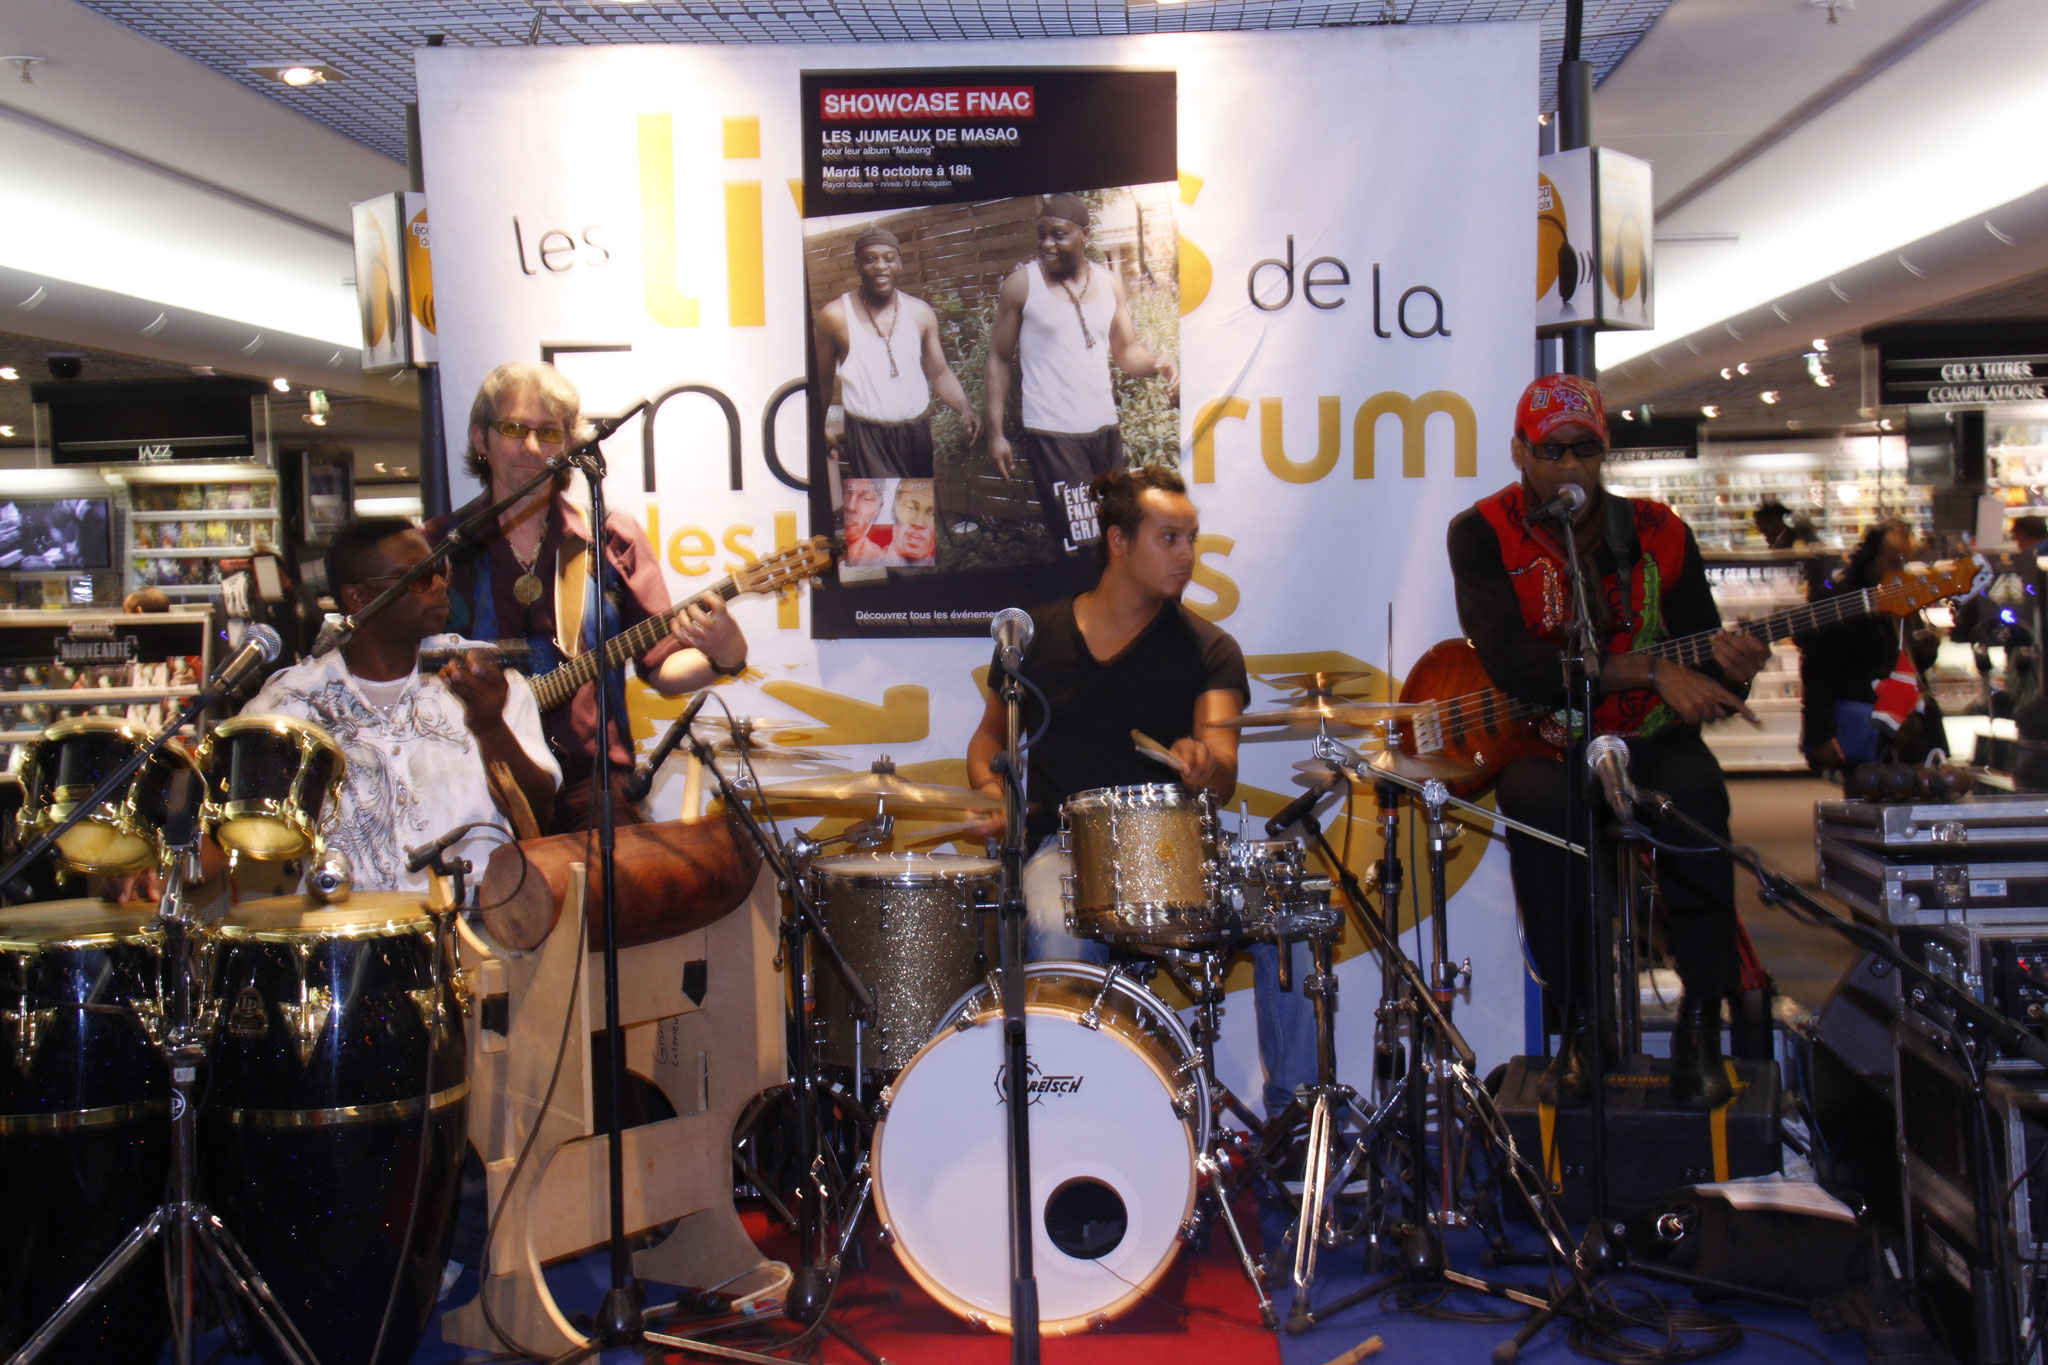 Les Jumeaux de MASAO (Masao Masu) with guitarist Phillipe Robert, drummer Davy Honneen, percussionist Hob Cool and Cameroonian bassite Noël Ekwabi at Fnac Chatelet les Halles. Photo: Michel Abdebreman